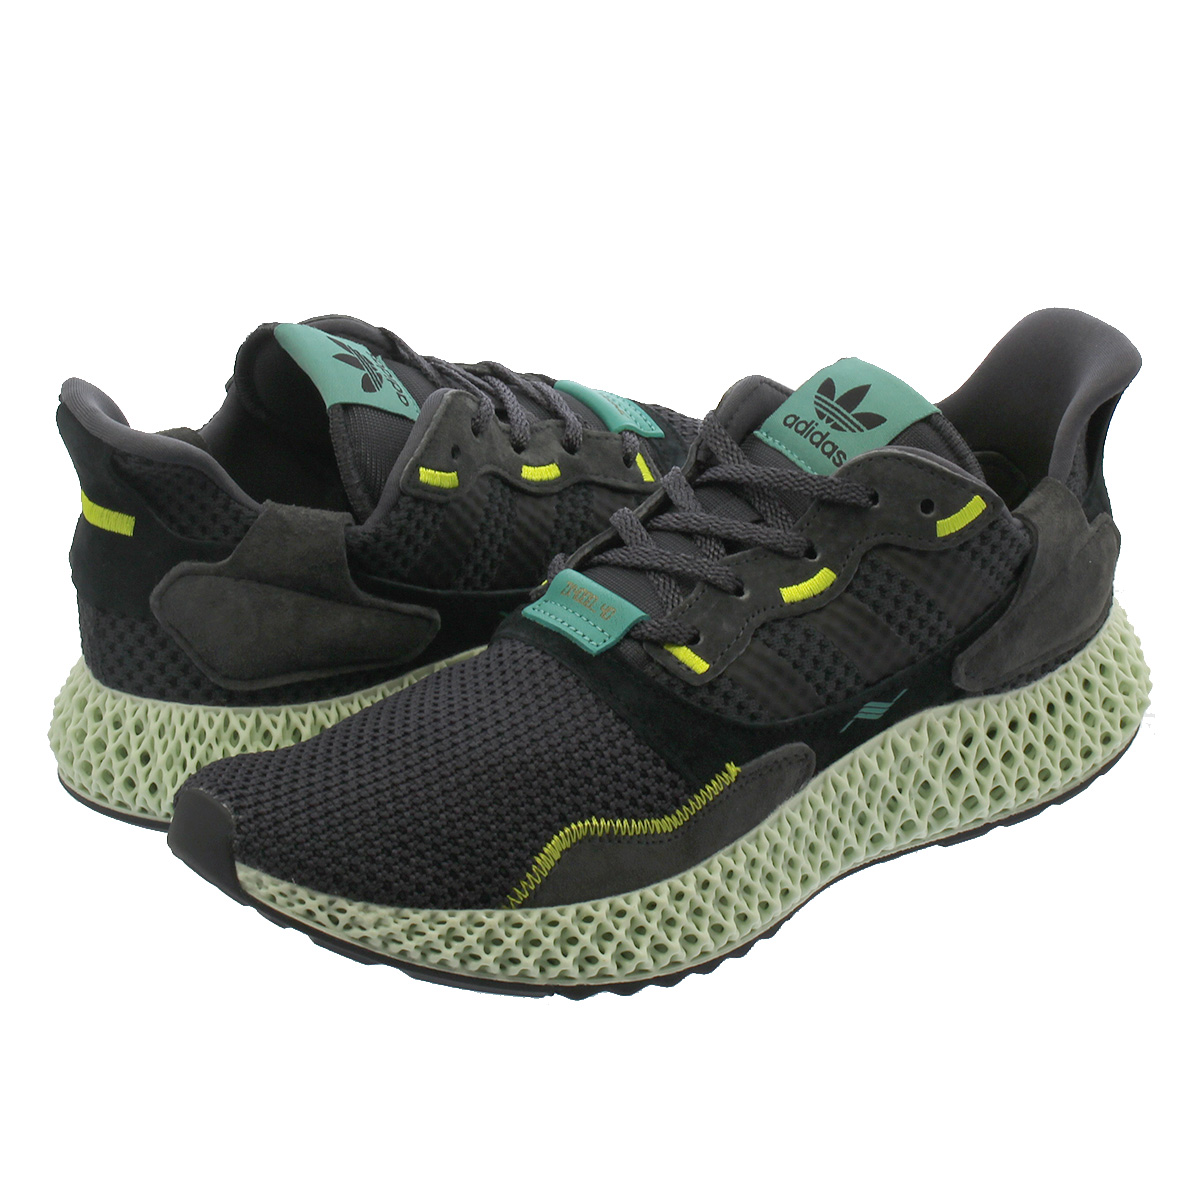 Adidas ZX 4000 4D 'CarbonCarbonSemi Solar Yellow' BD7865